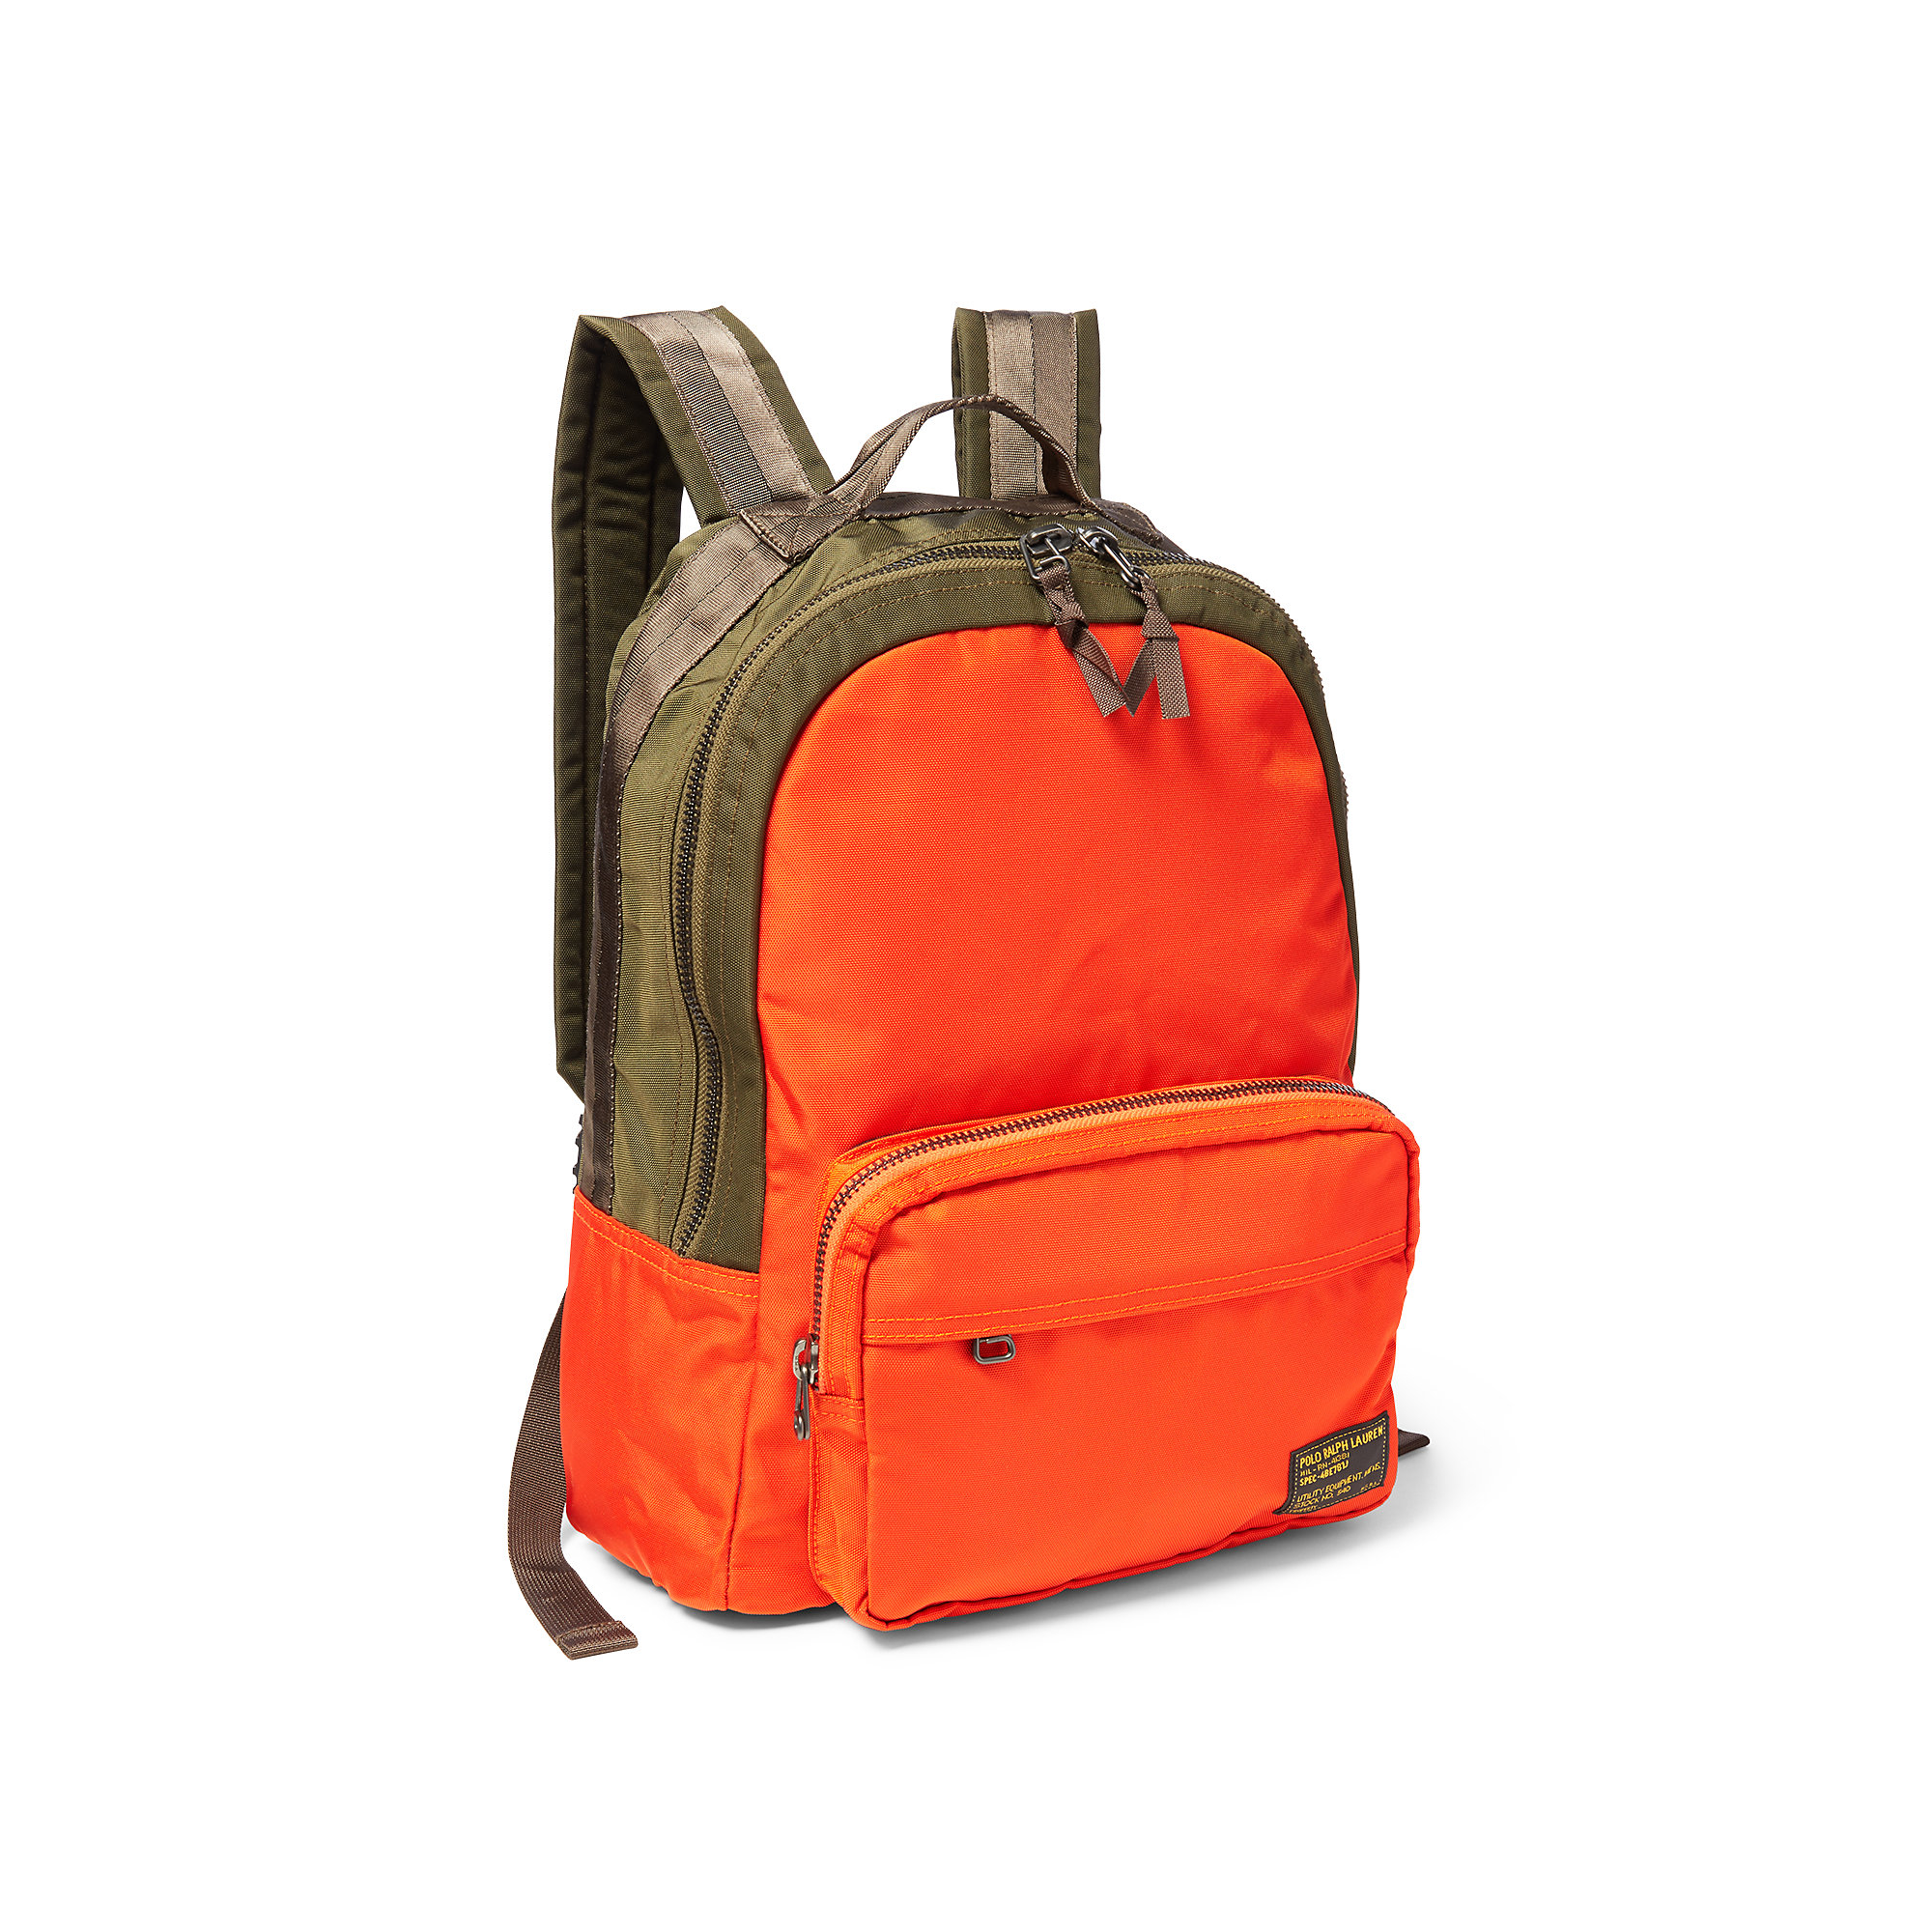 ccf77a8c9f Polo ralph lauren orange ulitility green military nylon dome backpack  orange product normal jpg 2000x2000 Lauren